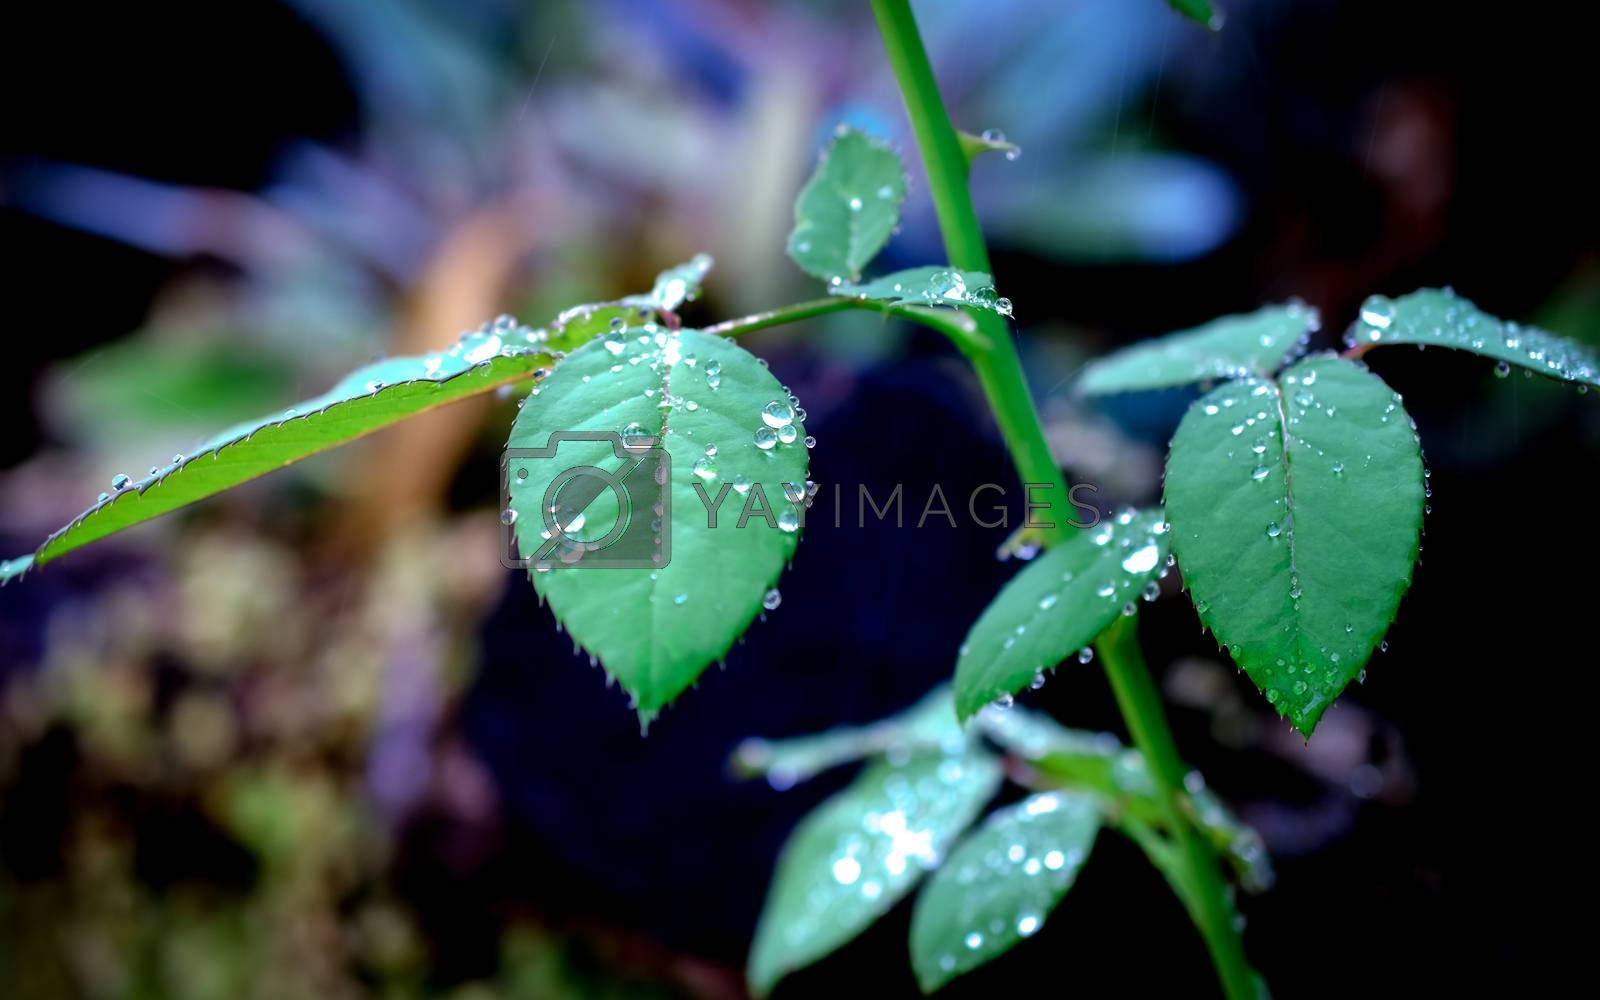 water drops on rose leaves in fresh garden.